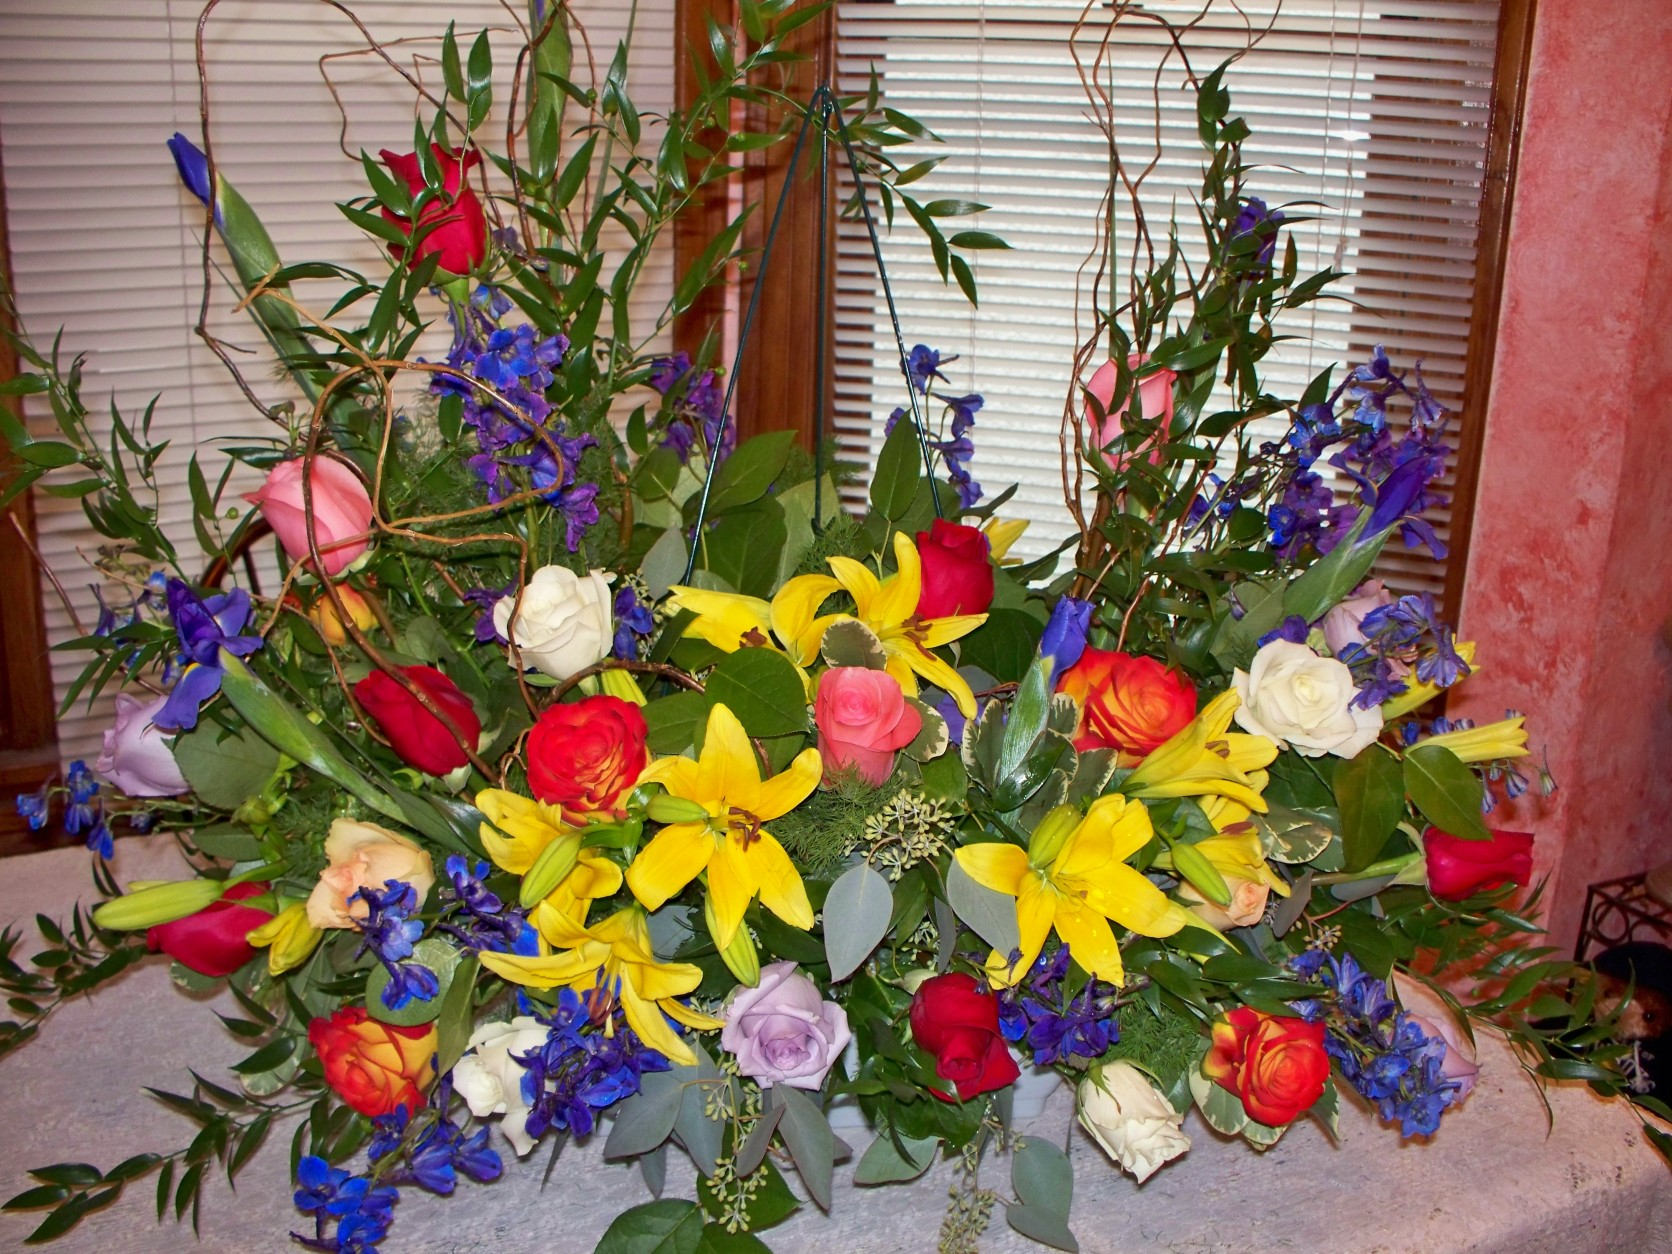 1622 MEMORIAL FLOWERS TO HOLD BELOVED PICTURE